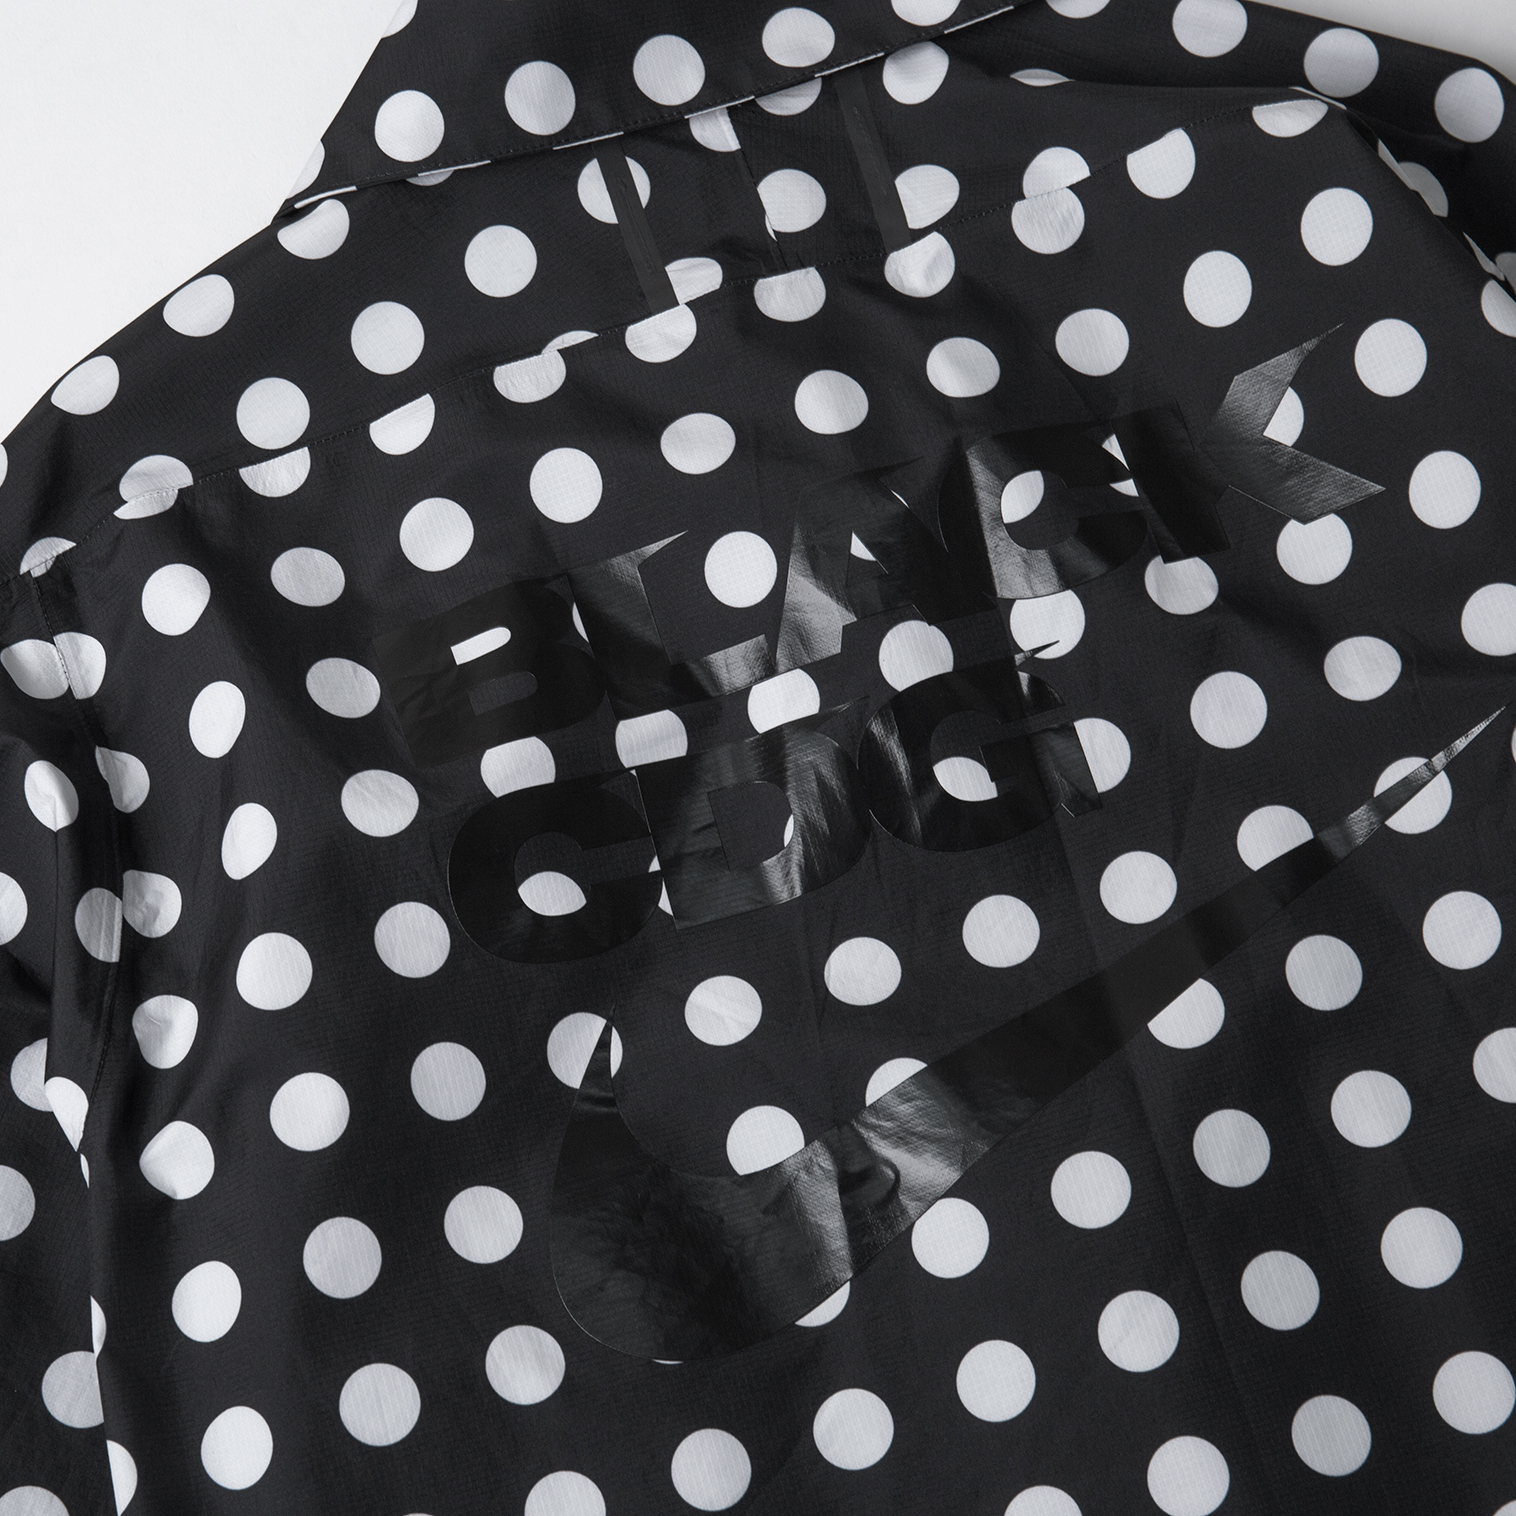 NIKE x BLACK COMME des GARCONS Polka Dot Half Zip Top